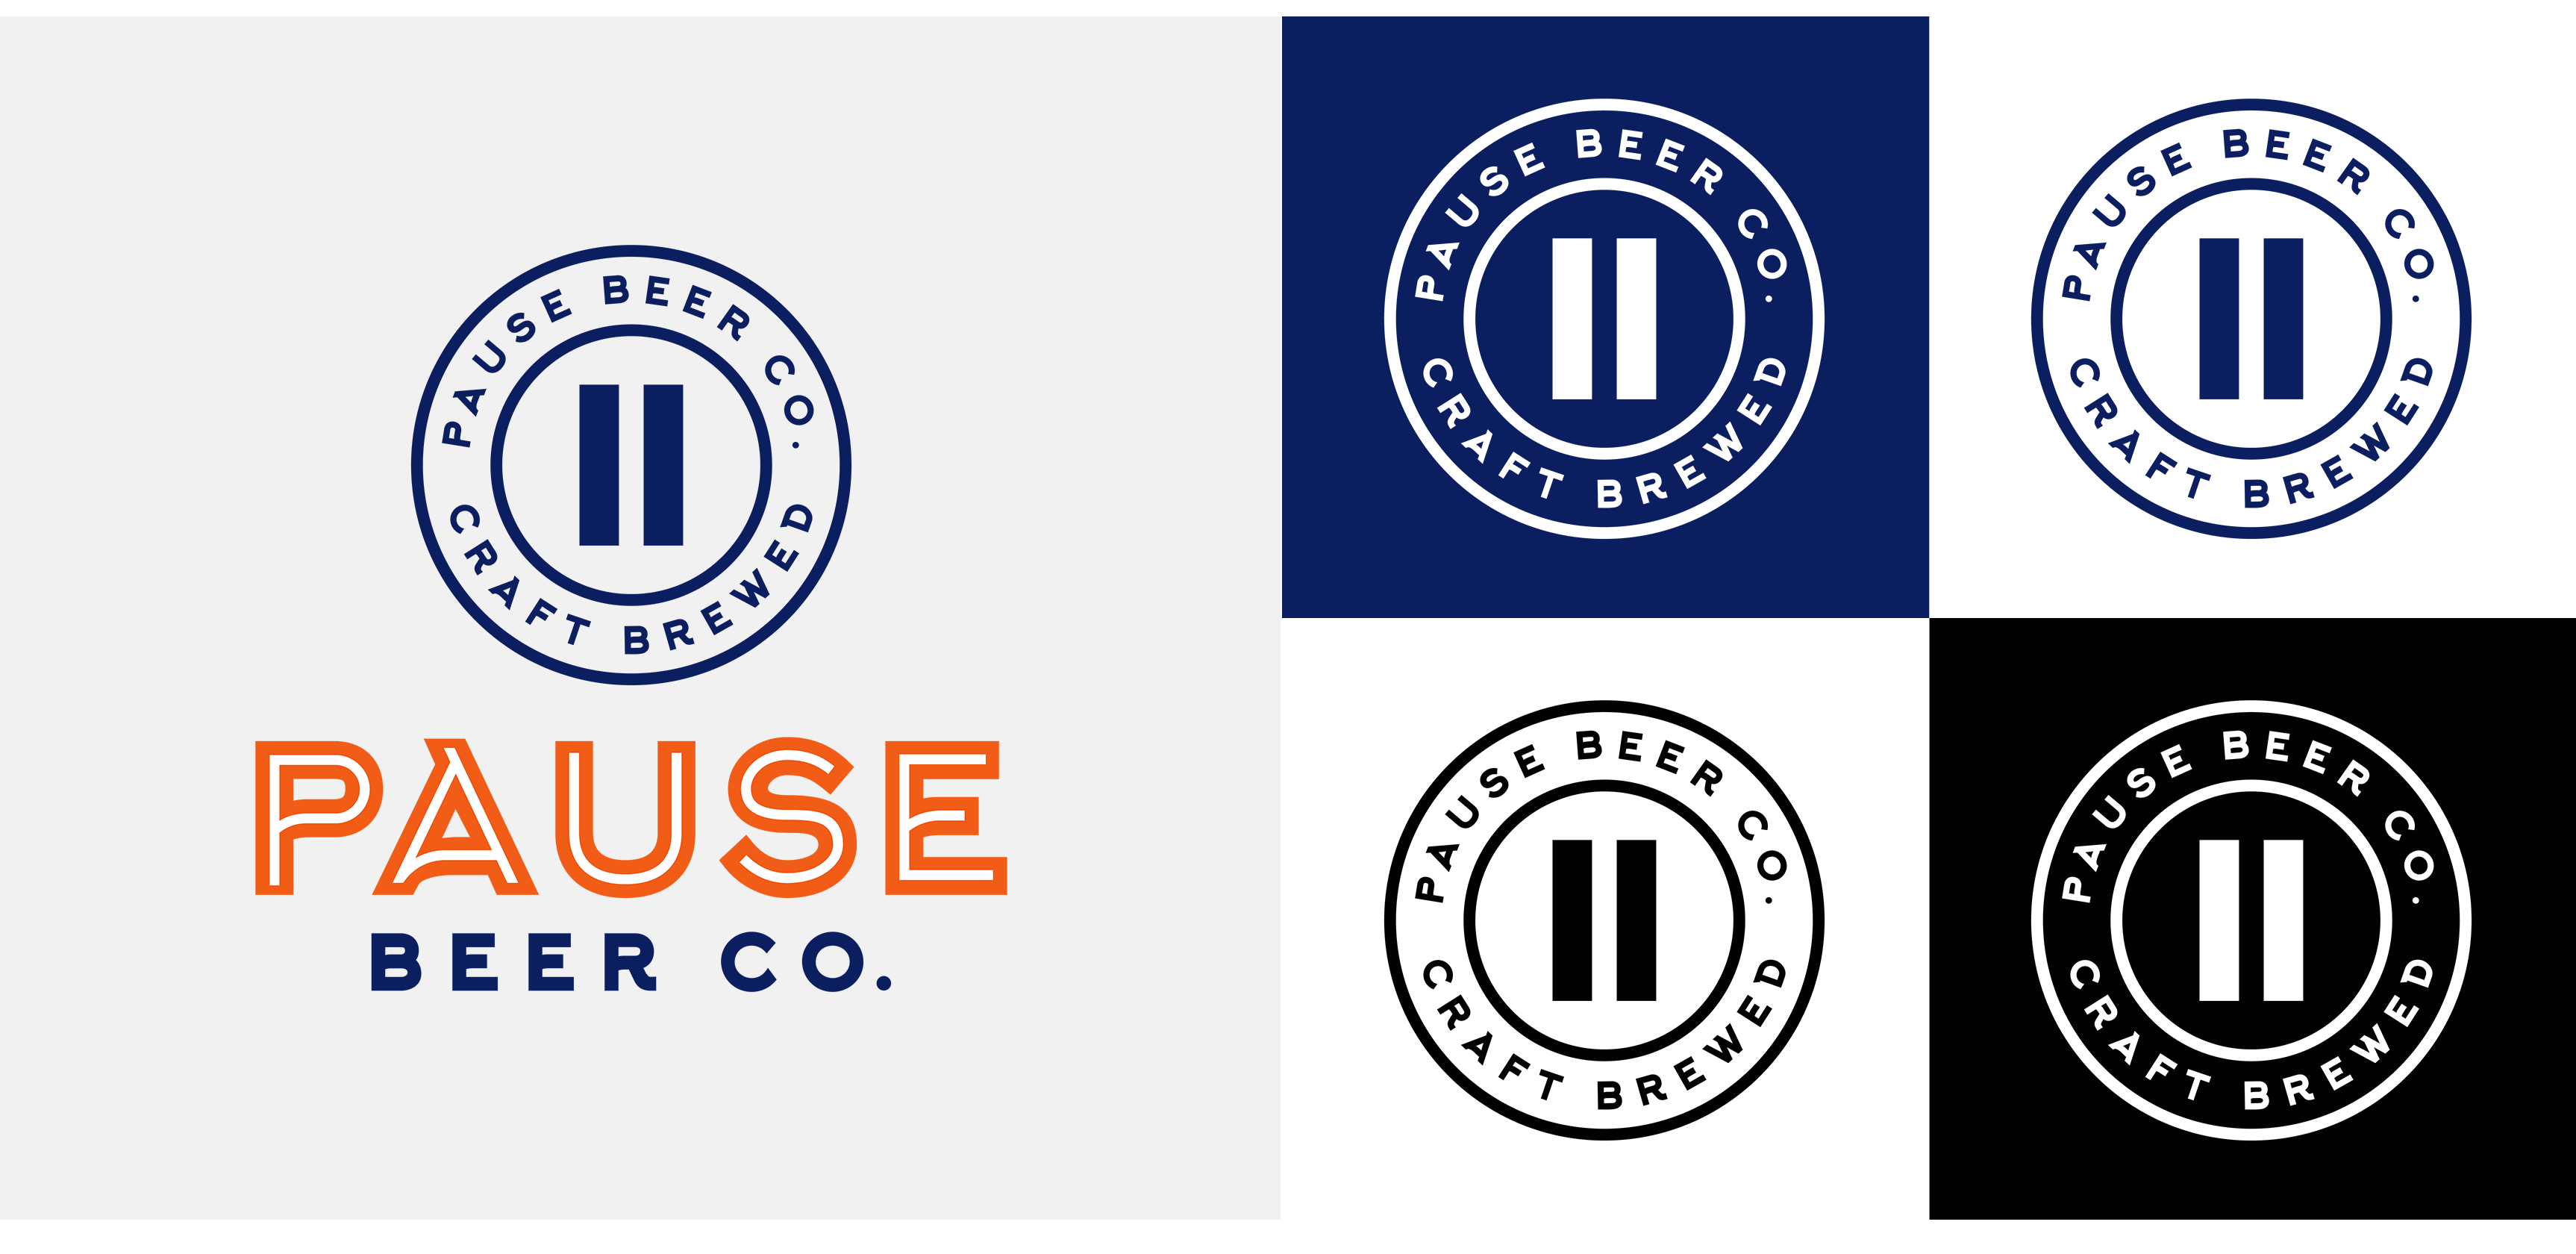 pause-beer-co-case-study-corporate-identity-design-logo-formats.png